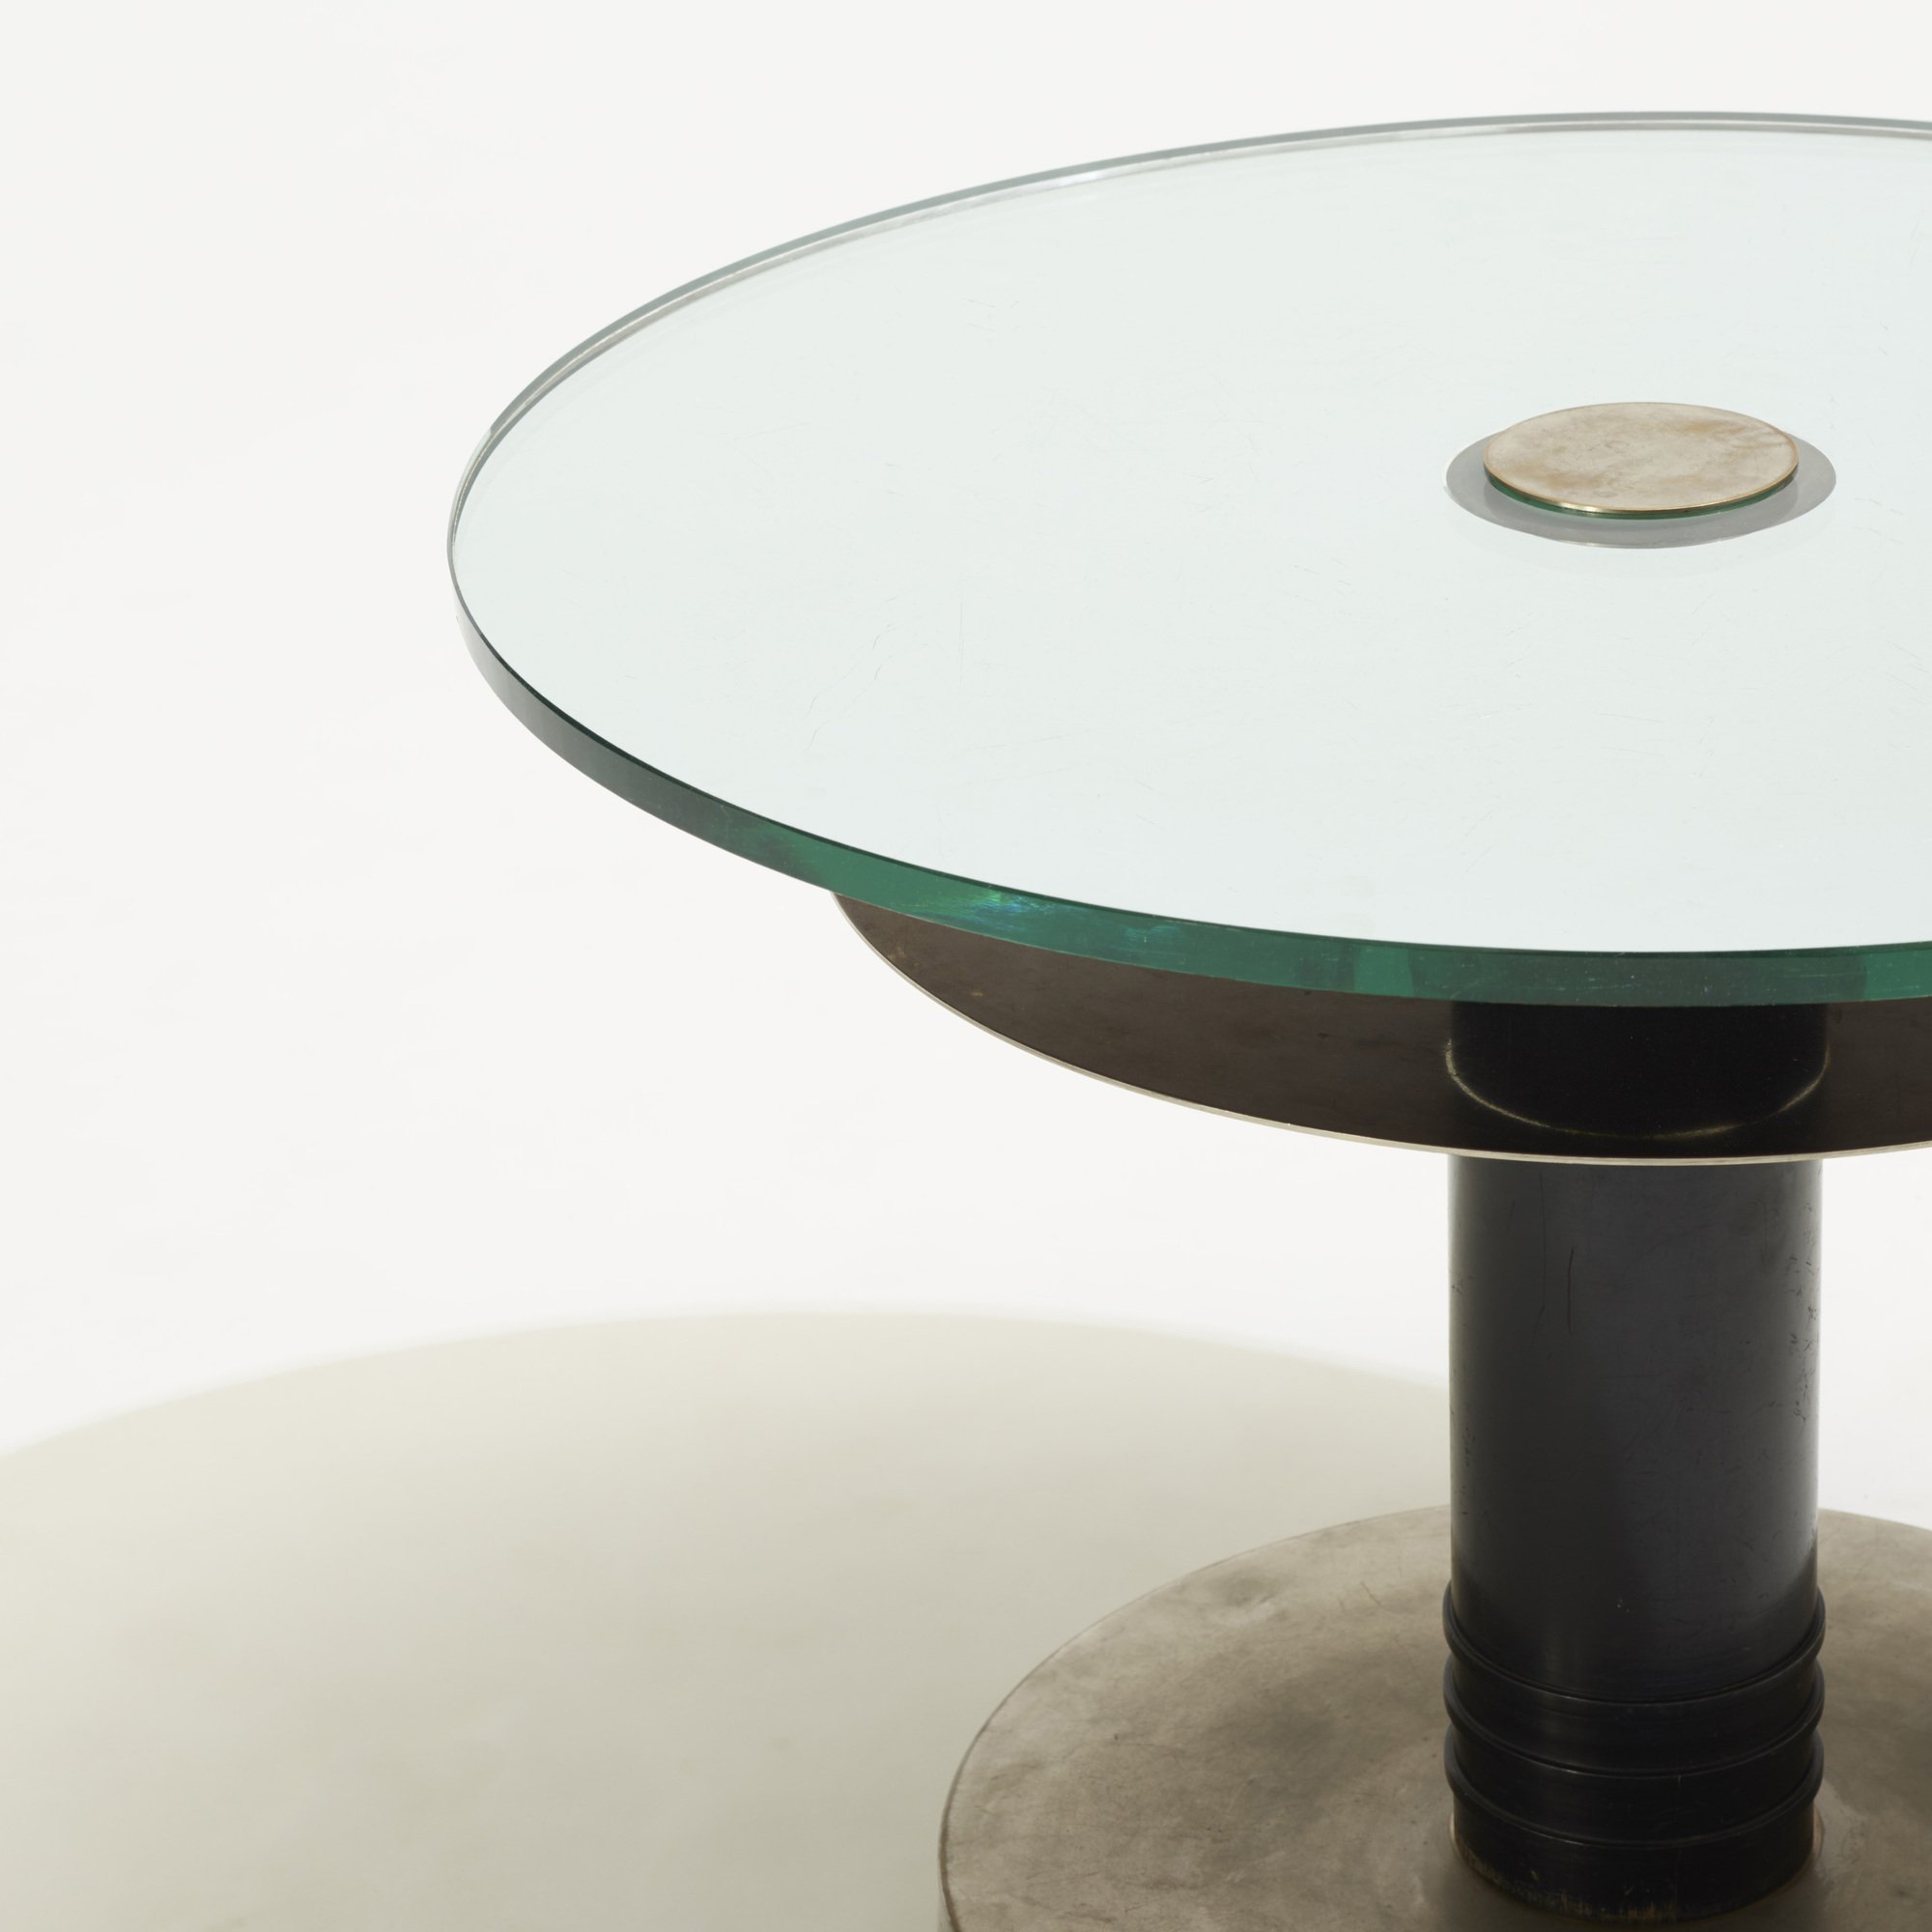 123: Axel Einar Hjorth / Typenko occasional table (2 of 2)